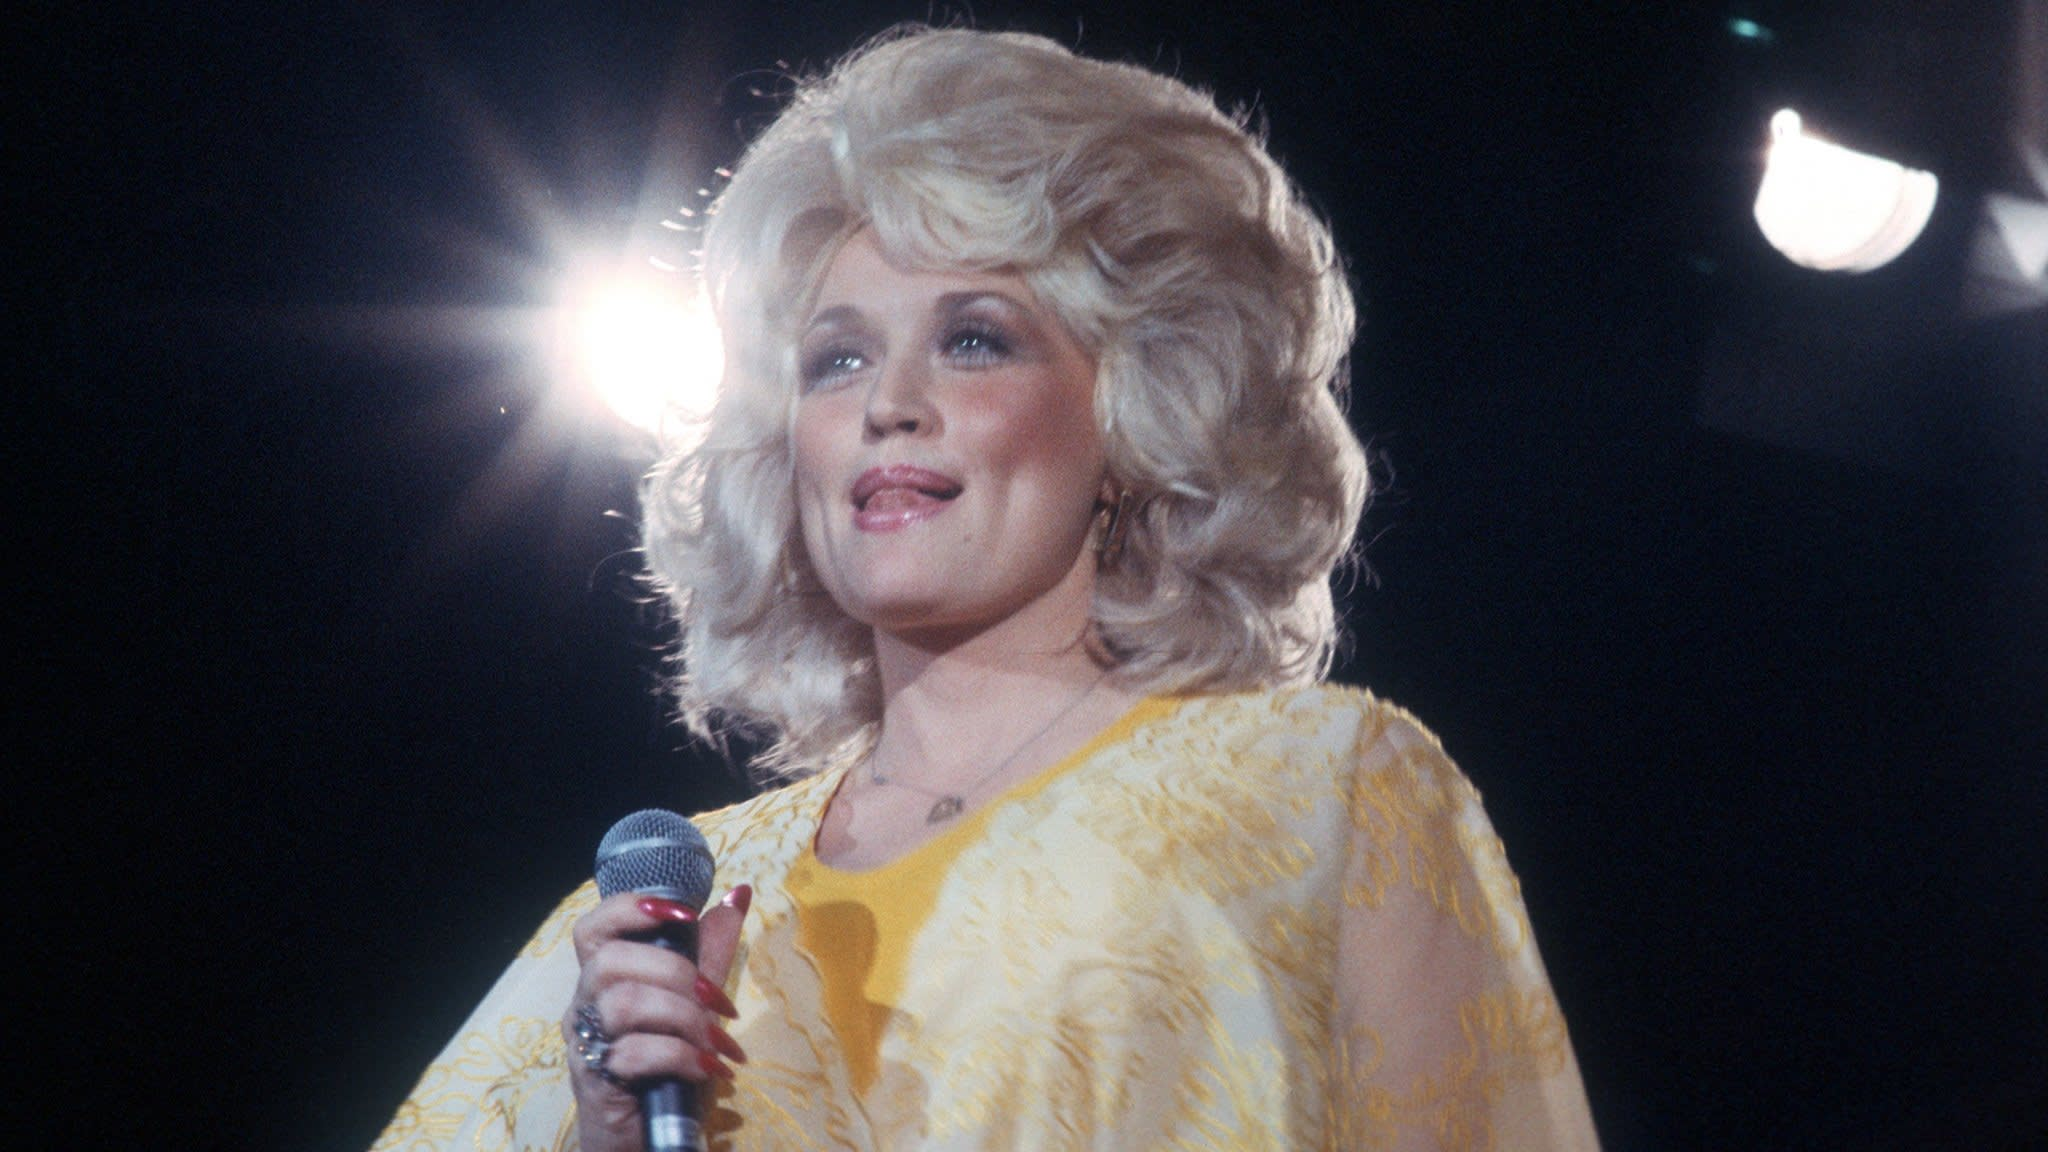 f2069613cc4fc Dolly Parton s Jolene — walks the line between dignity and ...